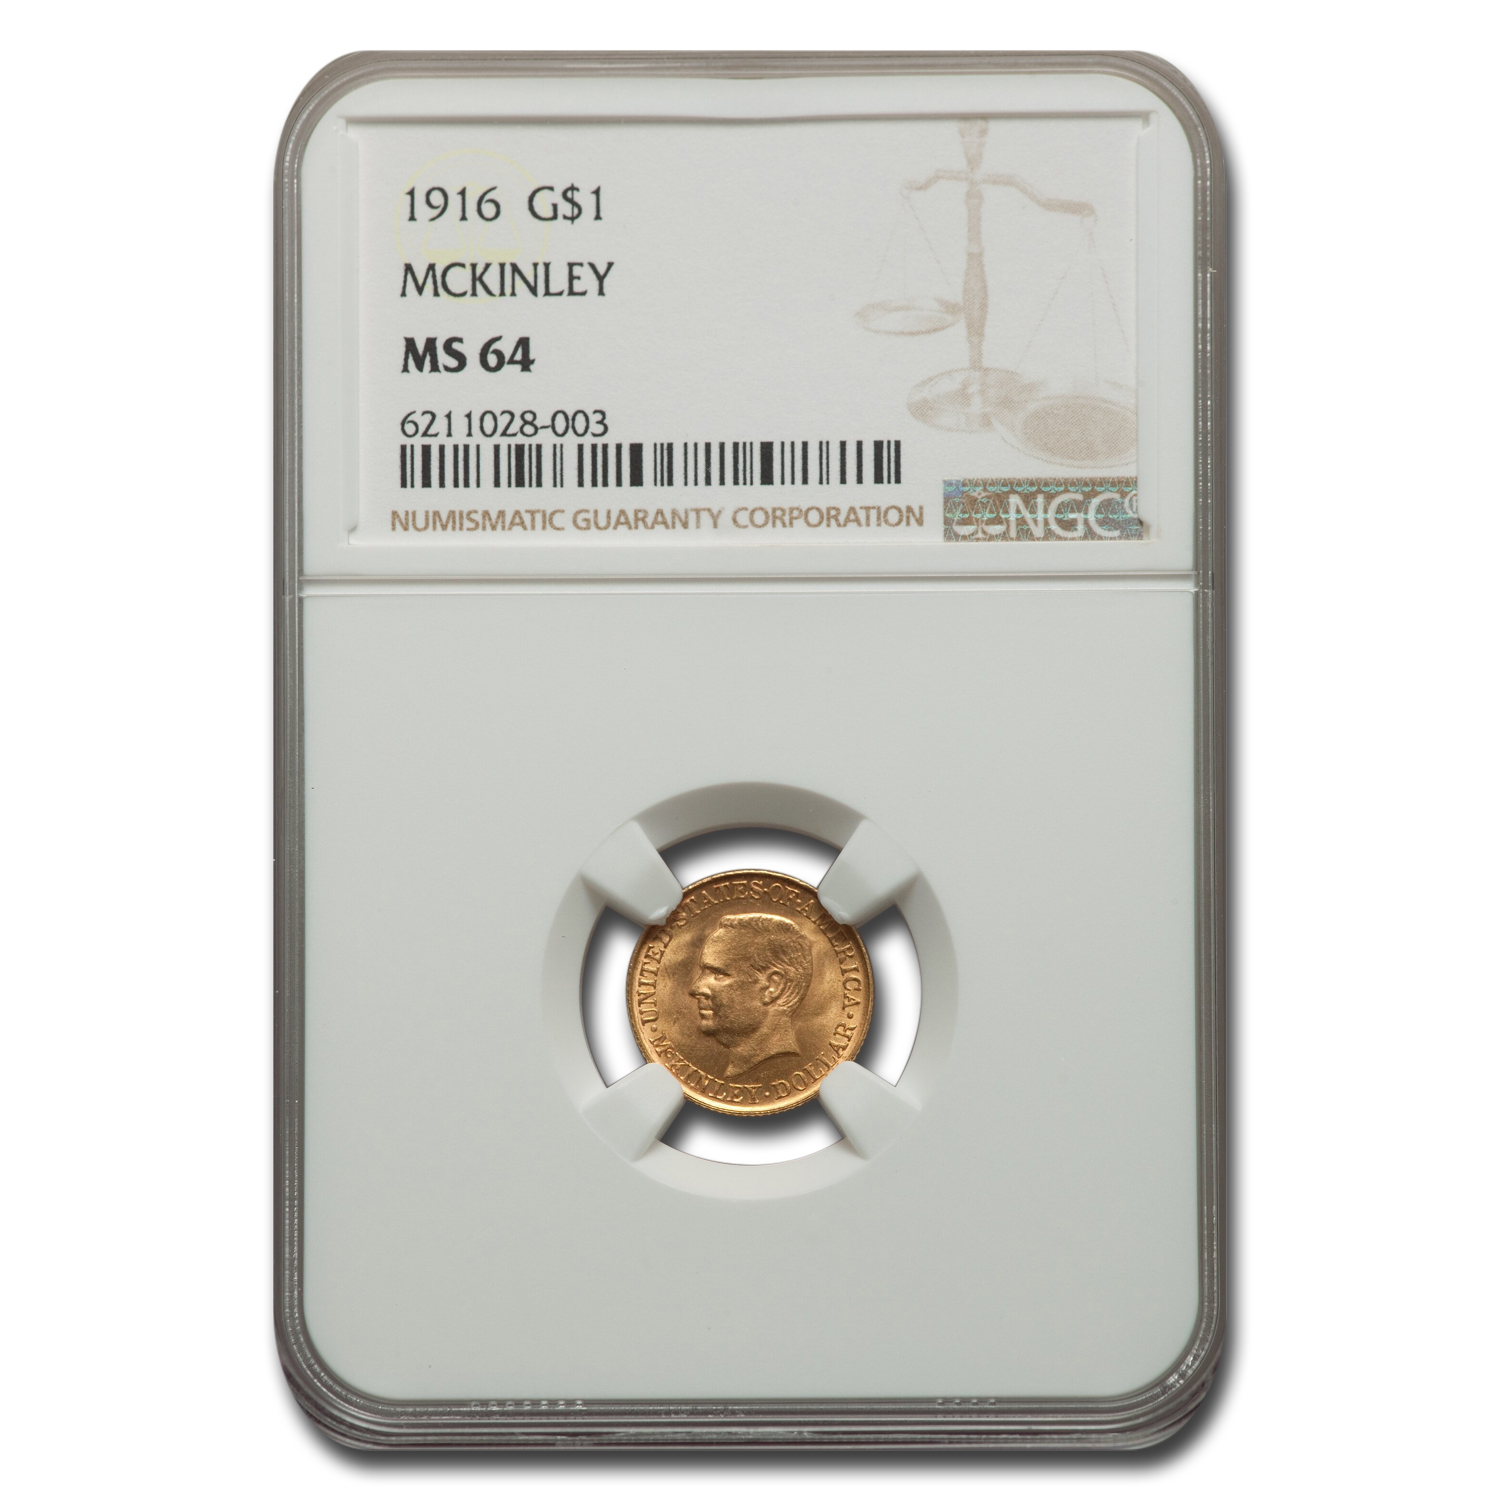 1916 Gold $1.00 McKinley MS-64 NGC